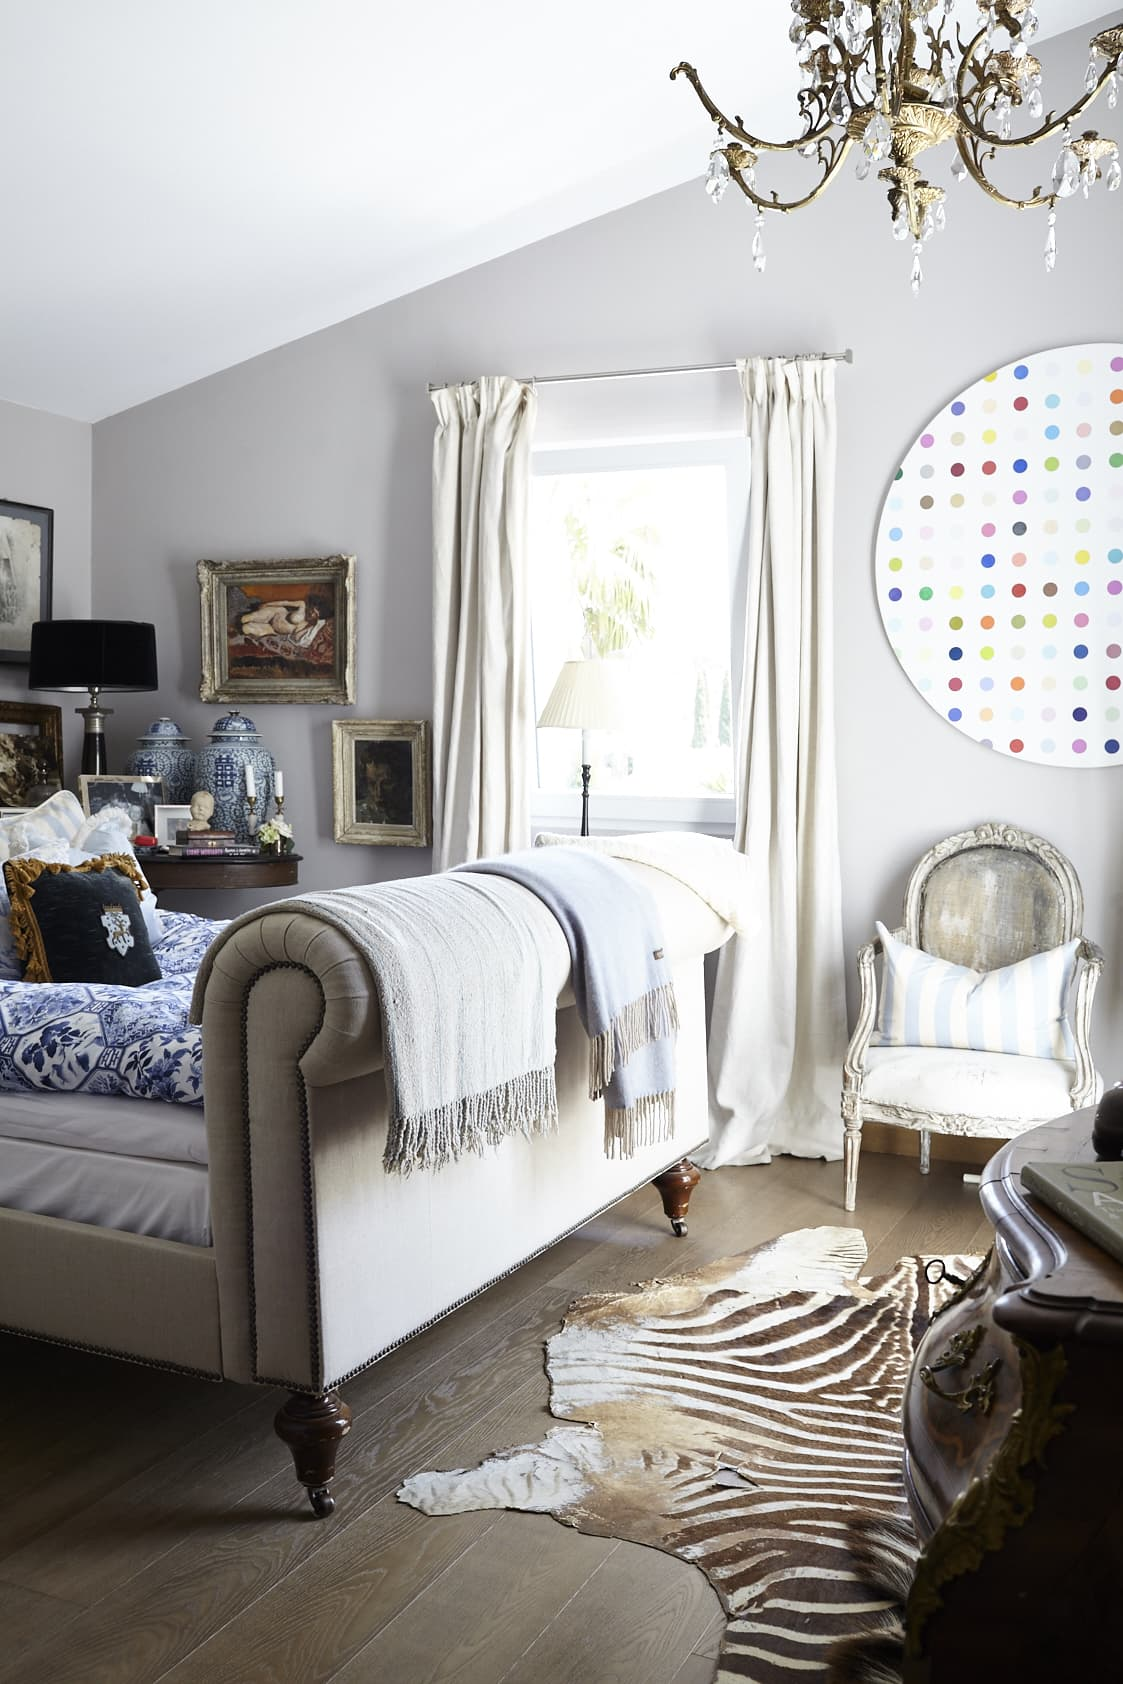 Anna's bedroom is located upstairs, facing the garden, and has access to its own little terrace. The color palette of beige, light gray, light blue and blue provides harmony. The bed is from Ralph Lauren and the chandelier is a flea market bargain.